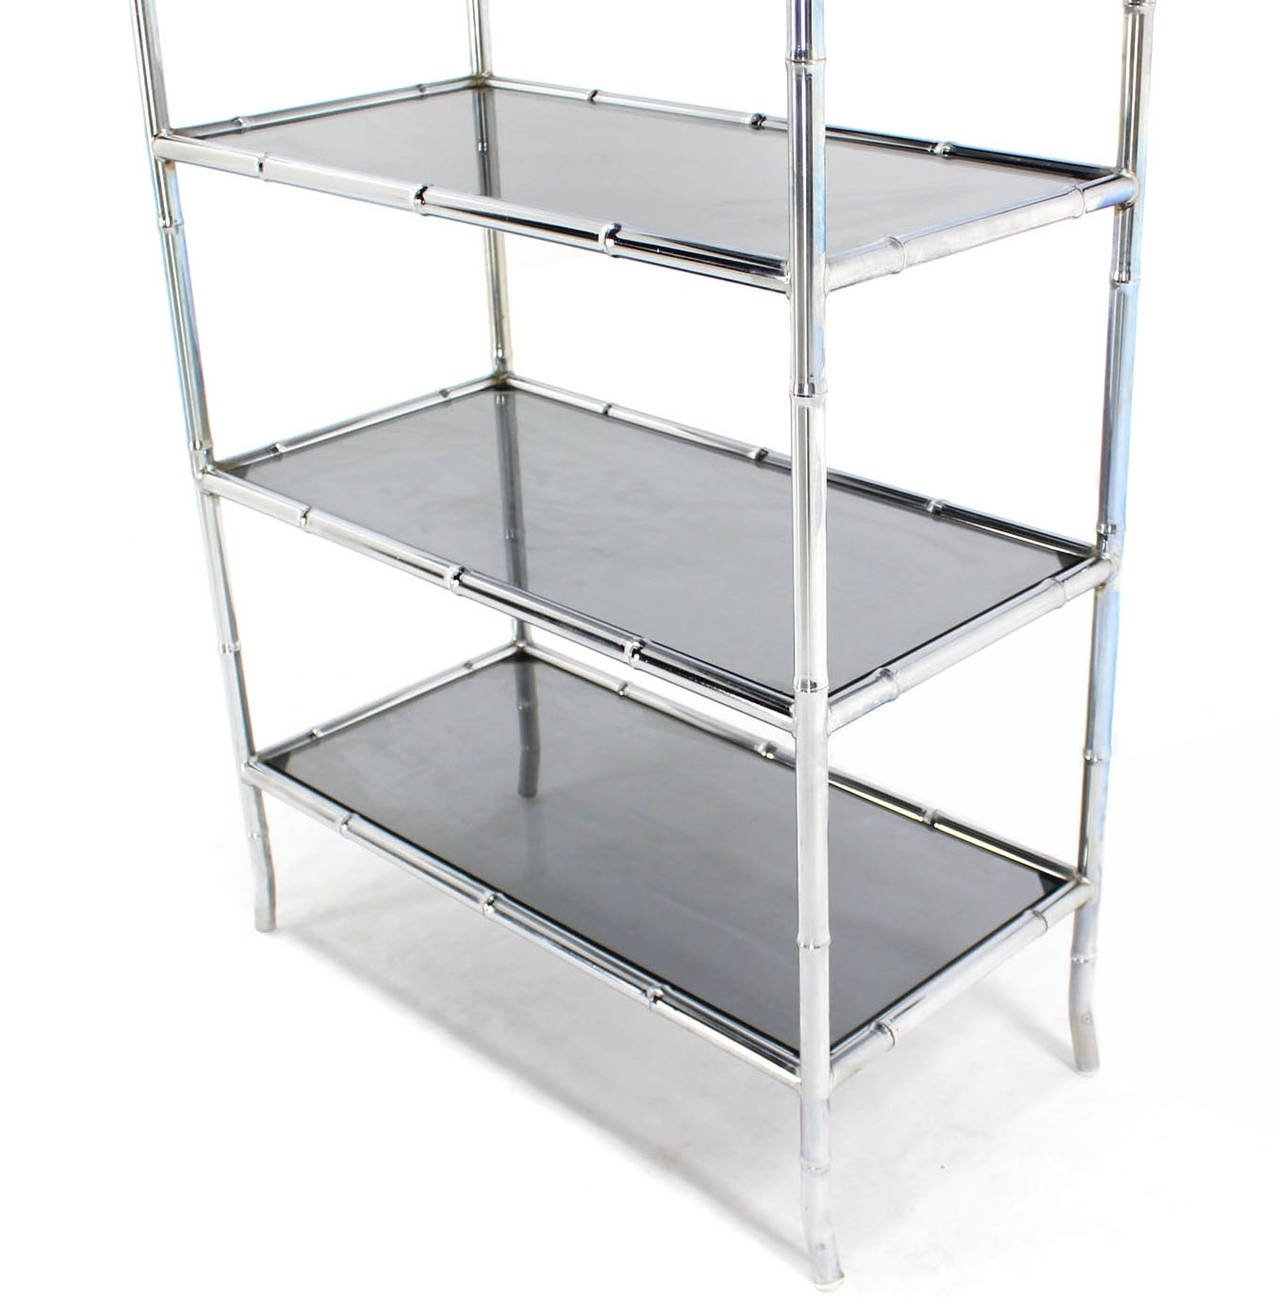 Chrome Faux Bamboo Etagere Unit With Smoked Glass Shelves At 1stdibs Regarding Smoked Glass Shelves (Image 1 of 15)